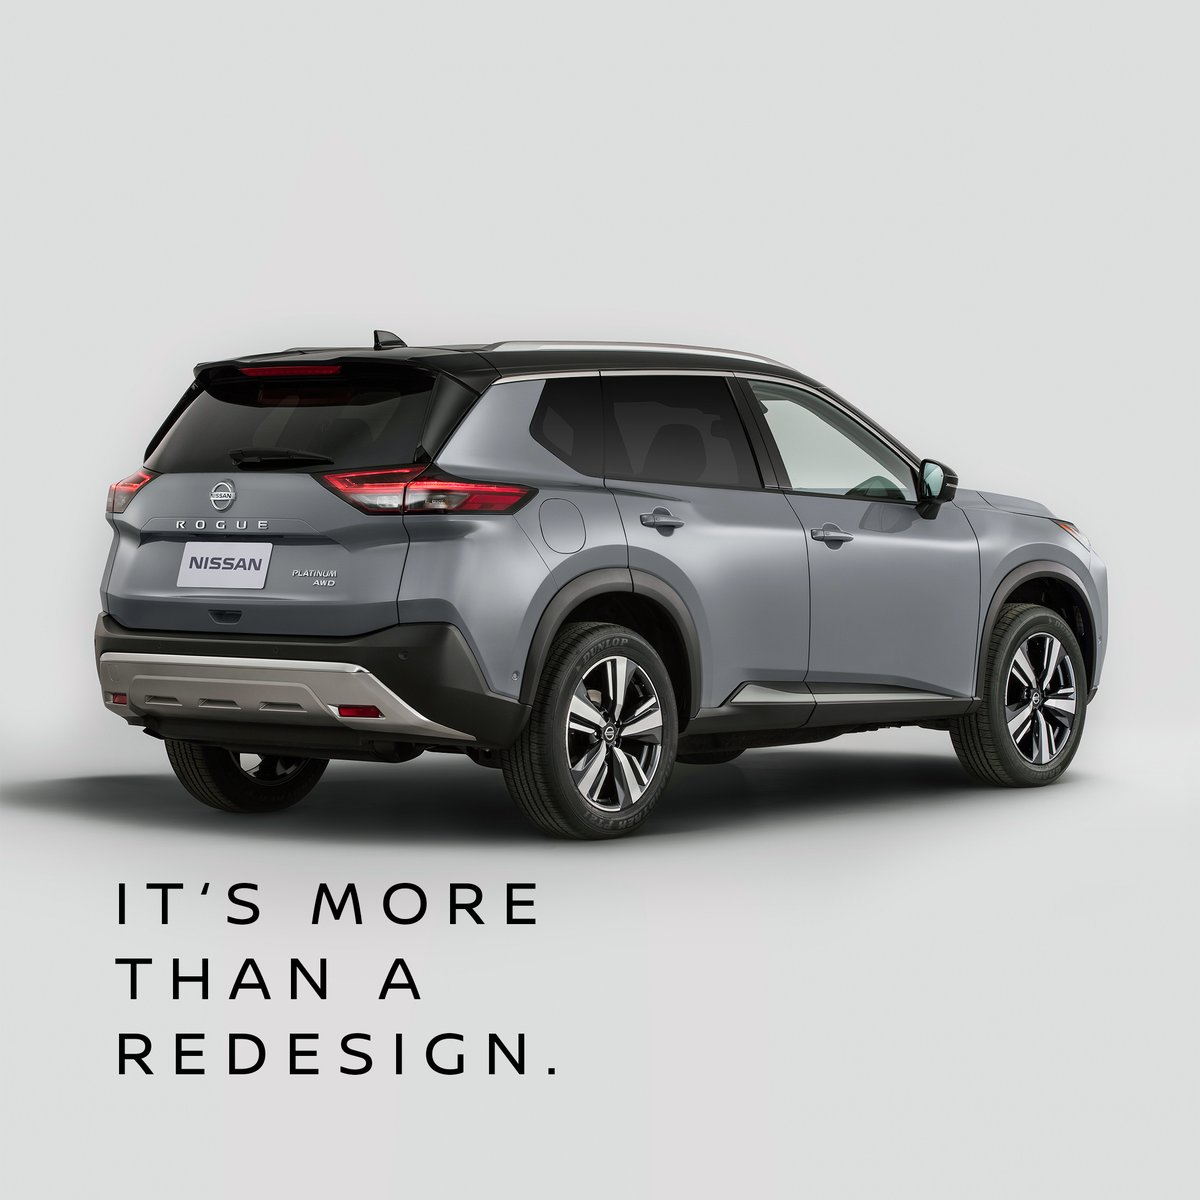 Why Don't You Stop...and Look Me Over...All-New Rogue. Start the New Year Right! #RogueGoneRogue #NissanRogue2021